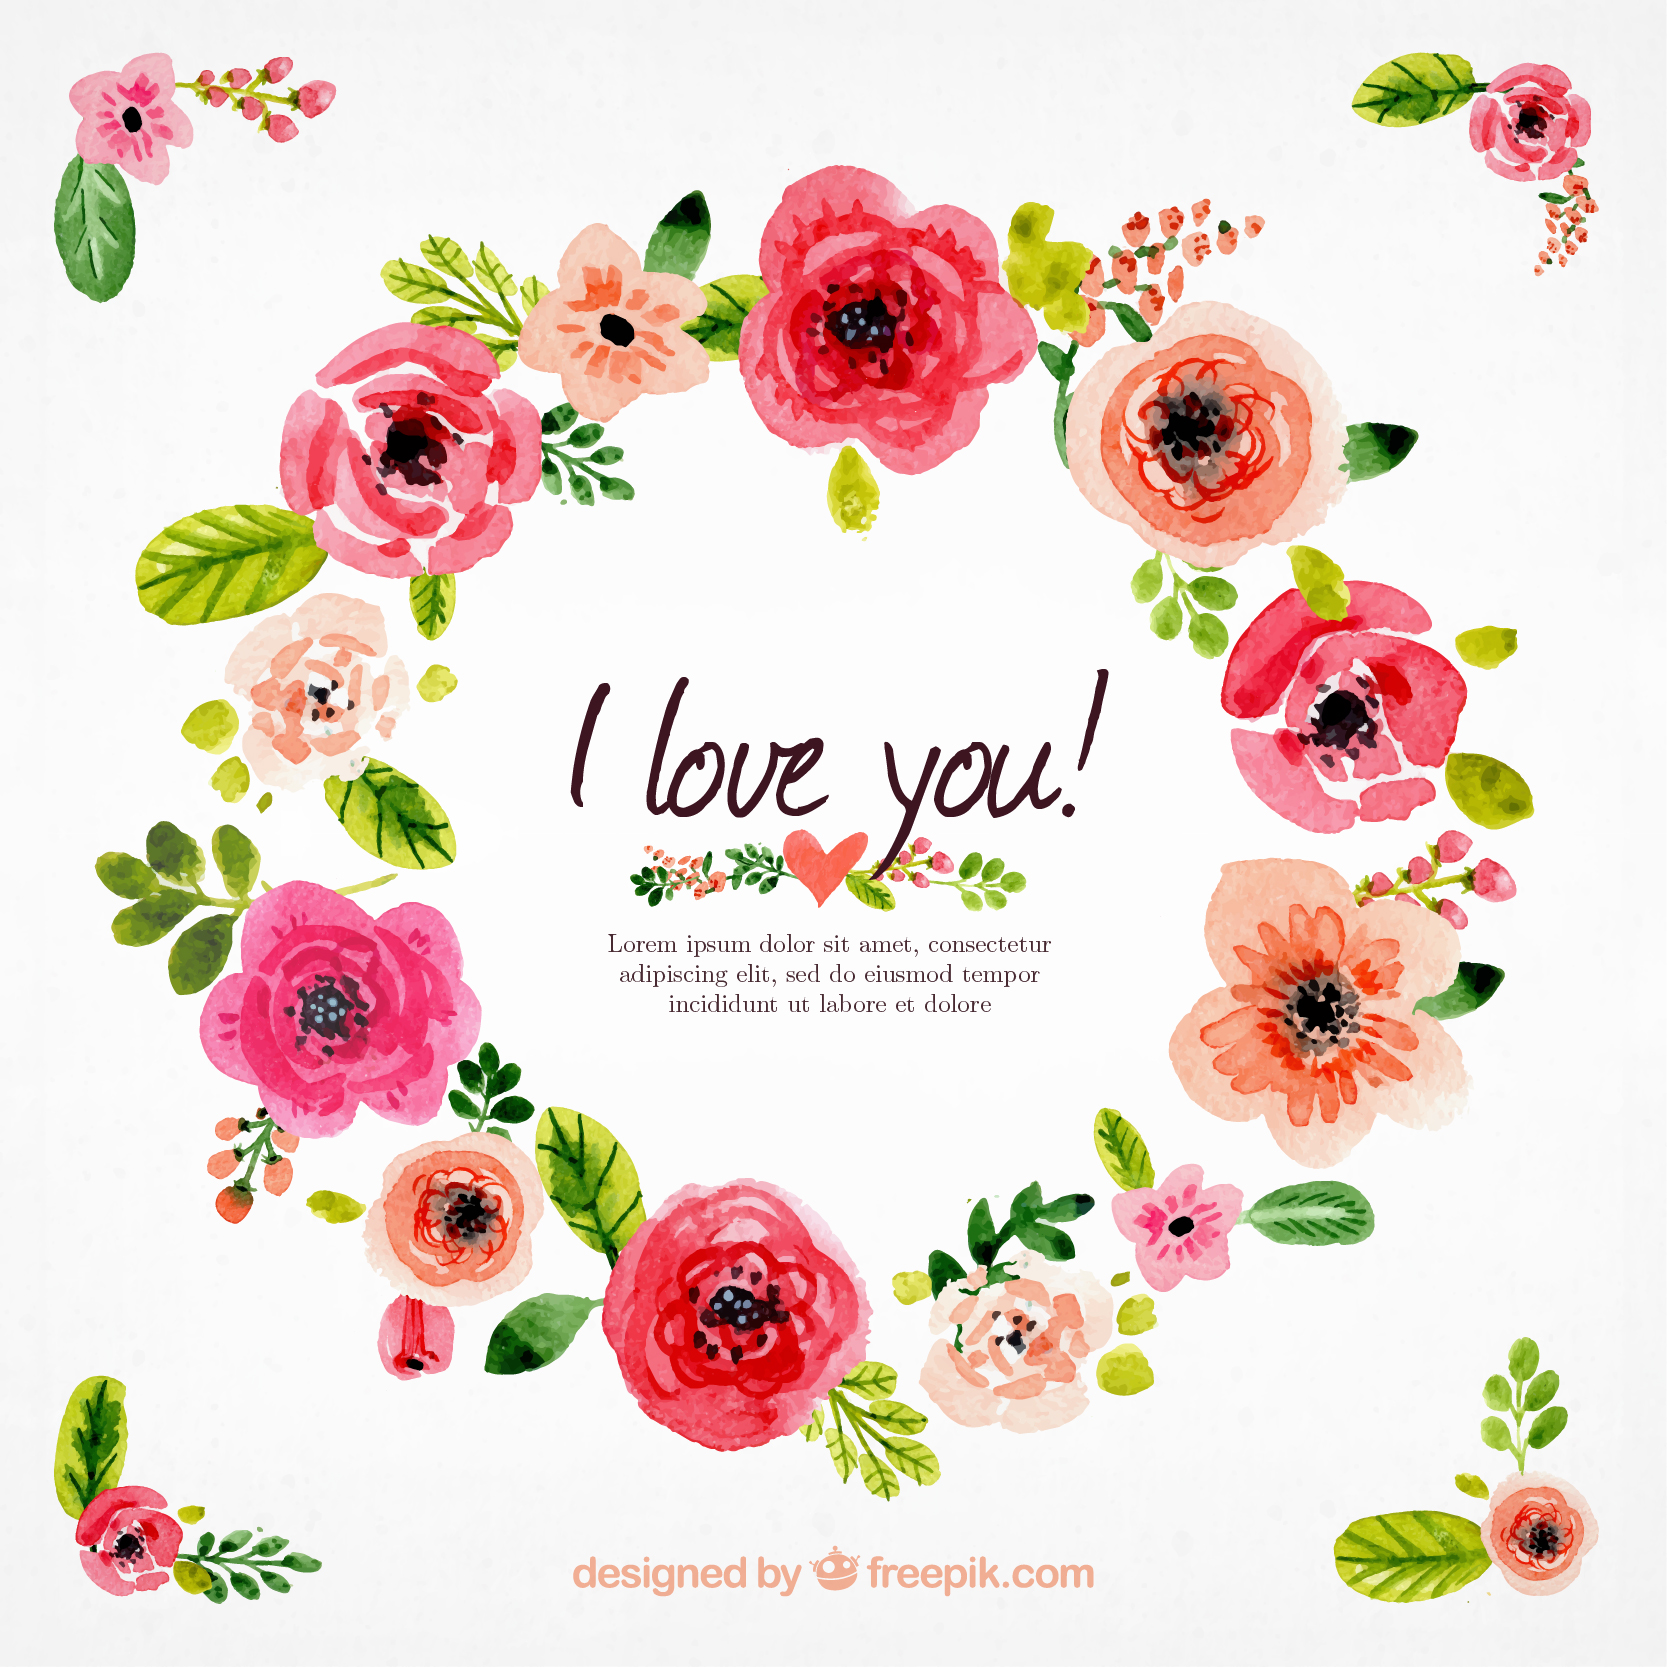 Watercolor floral wreath Free Vector Free download: http://goo.gl.